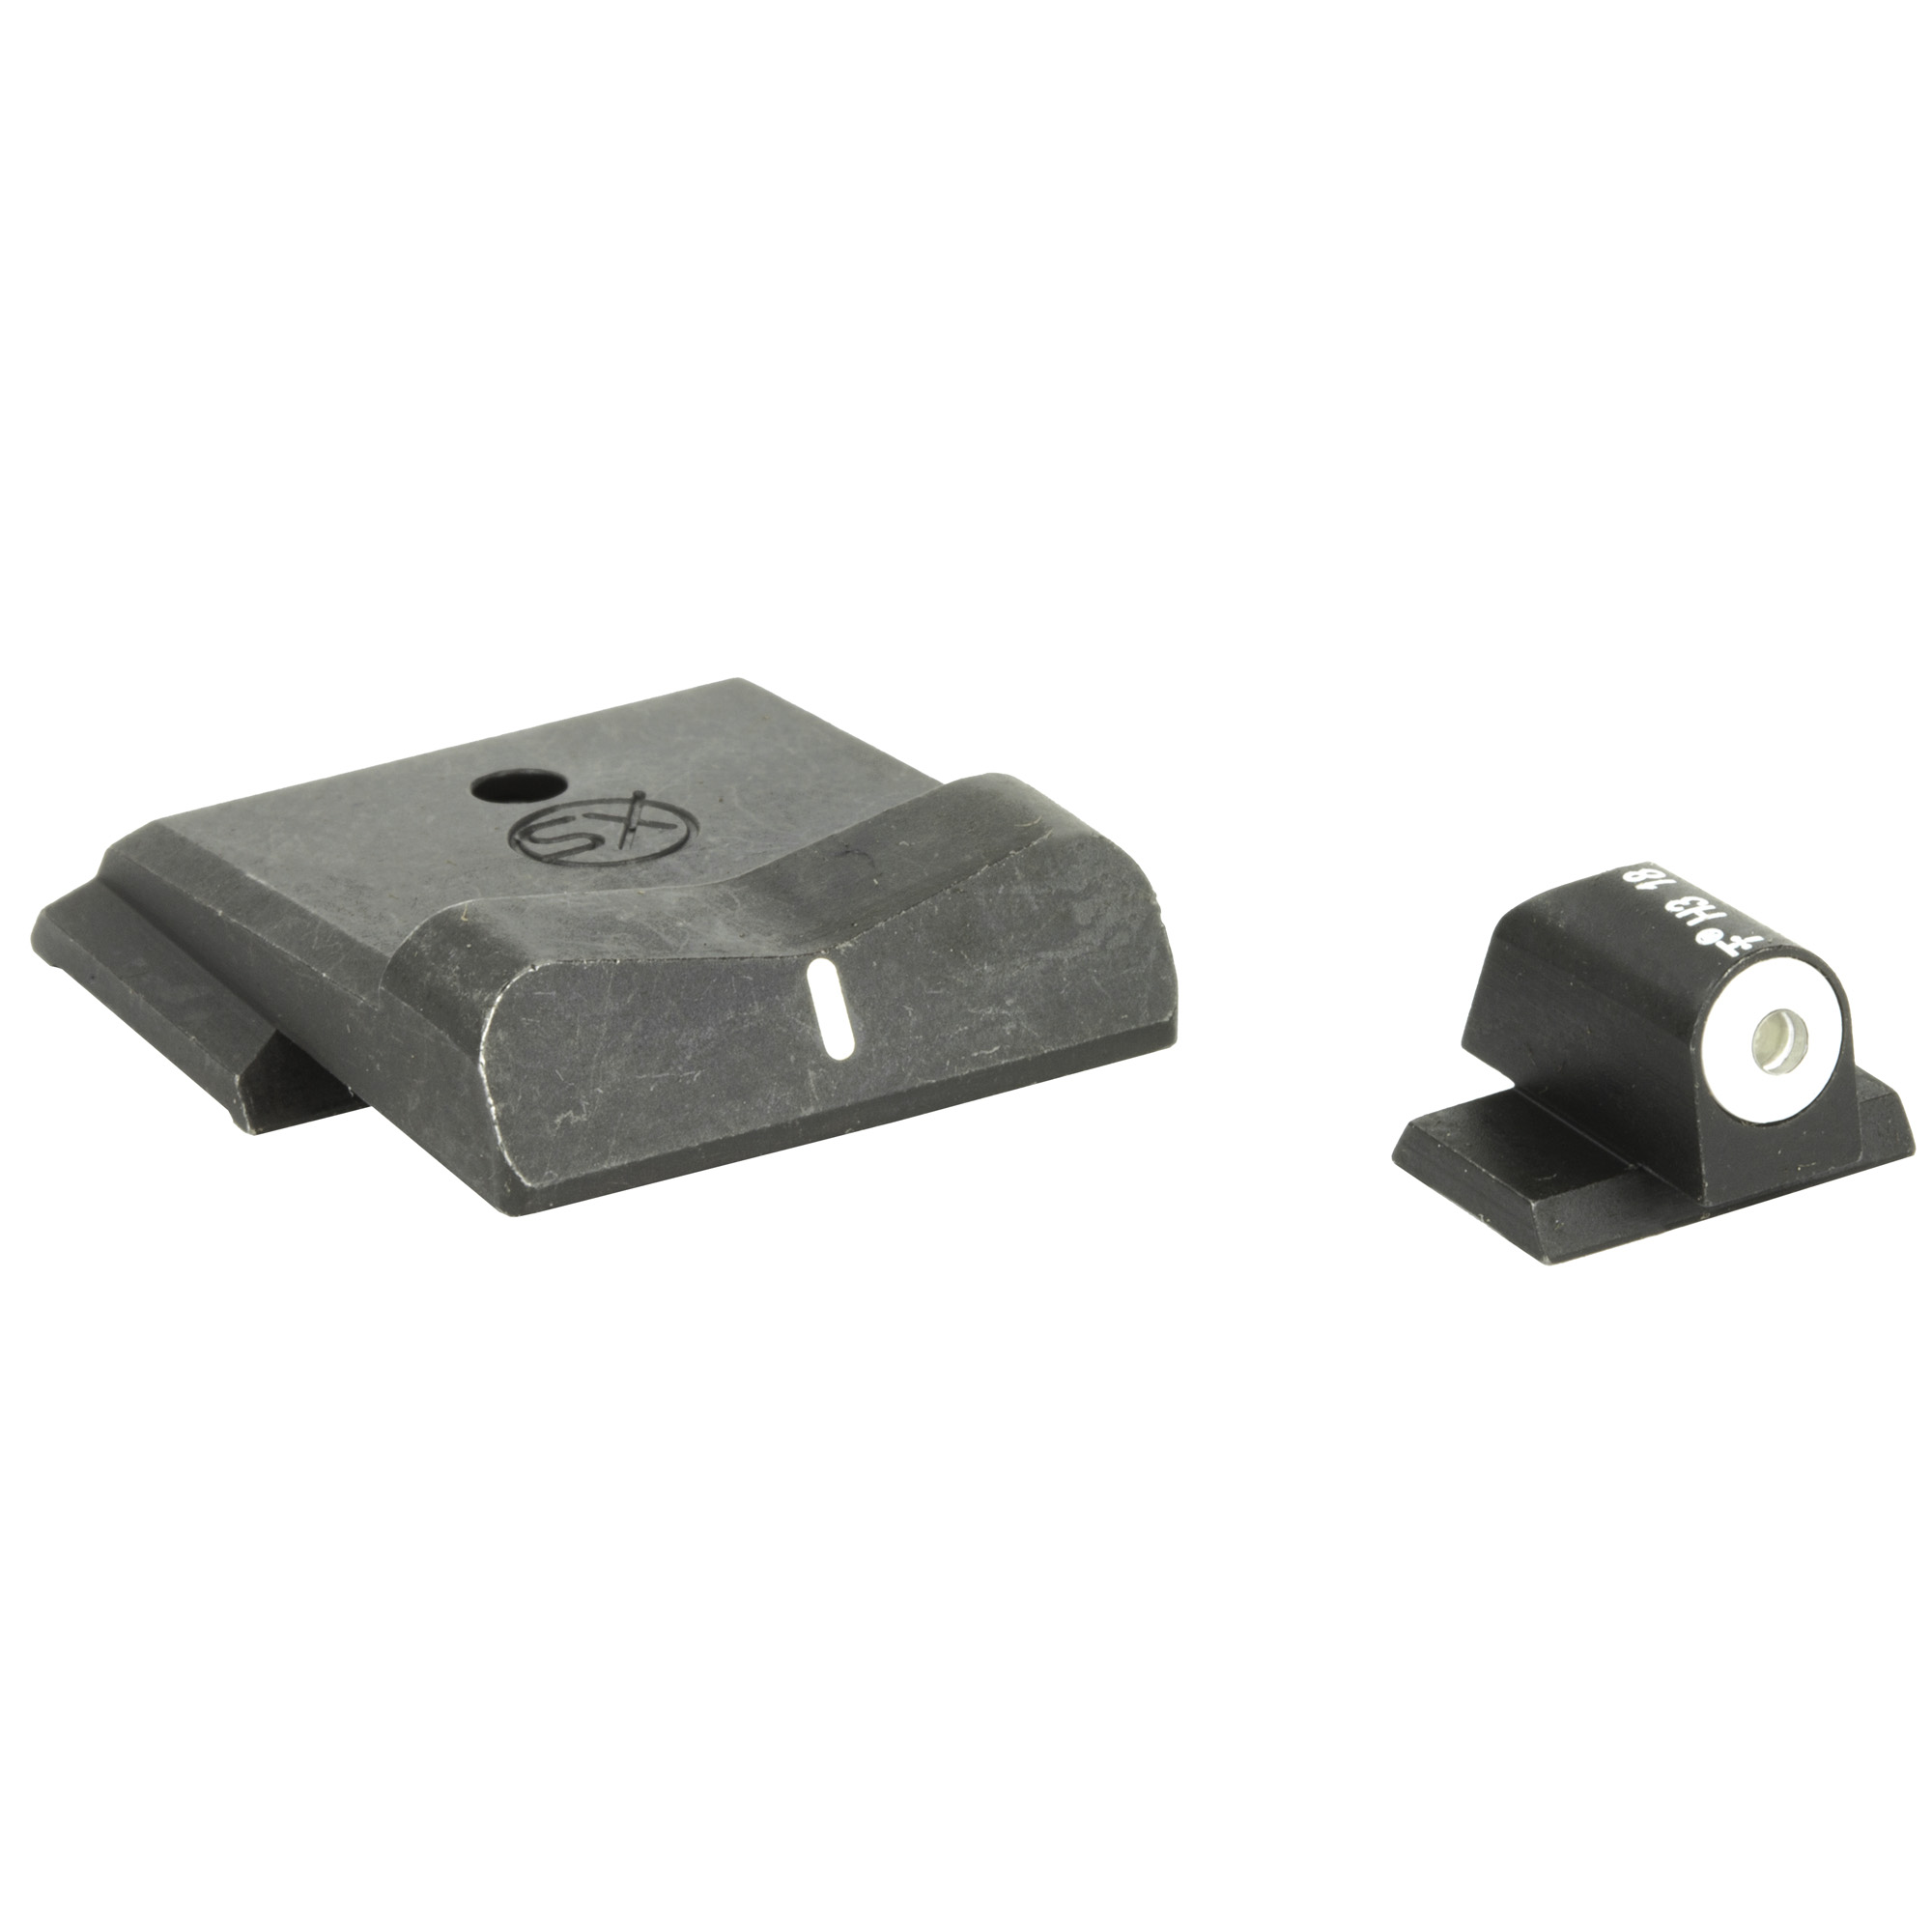 "The XS DXW Big Dot night sight is a superior defensive sight set. Fits S&W M&P"" M&P M2.0"" M&P Compact"" & M&P M2.0 Compact; 9mm"" 40S&W"" & 45ACP. Precision machined in Fort Worth"" TX"" XS Sights feature a Big Dot Tritium front sight and express rear sight with a white stripe for fast sight acquisition in all light conditions. Big Dot demands your attention - even in high stress and for those with poor eyesight"" aids in rapidly achieving combat effective hits. White dot reflects ambient light for best visibility in low light. Shallow V-Notch rear provides an unobstructed view of the front sight"" along with a greater field of view down range"" especially when moving and shooting. Day-Light"" Half-Light"" or Low-Light"" just ""dot the i"" and center the dot over your target within 15 yards. Outside Diameter Big Dot 0.188""; fits in common holsters. Installation might require filing to fit sight to dovetail"" do not use a sight press/pusher tool."